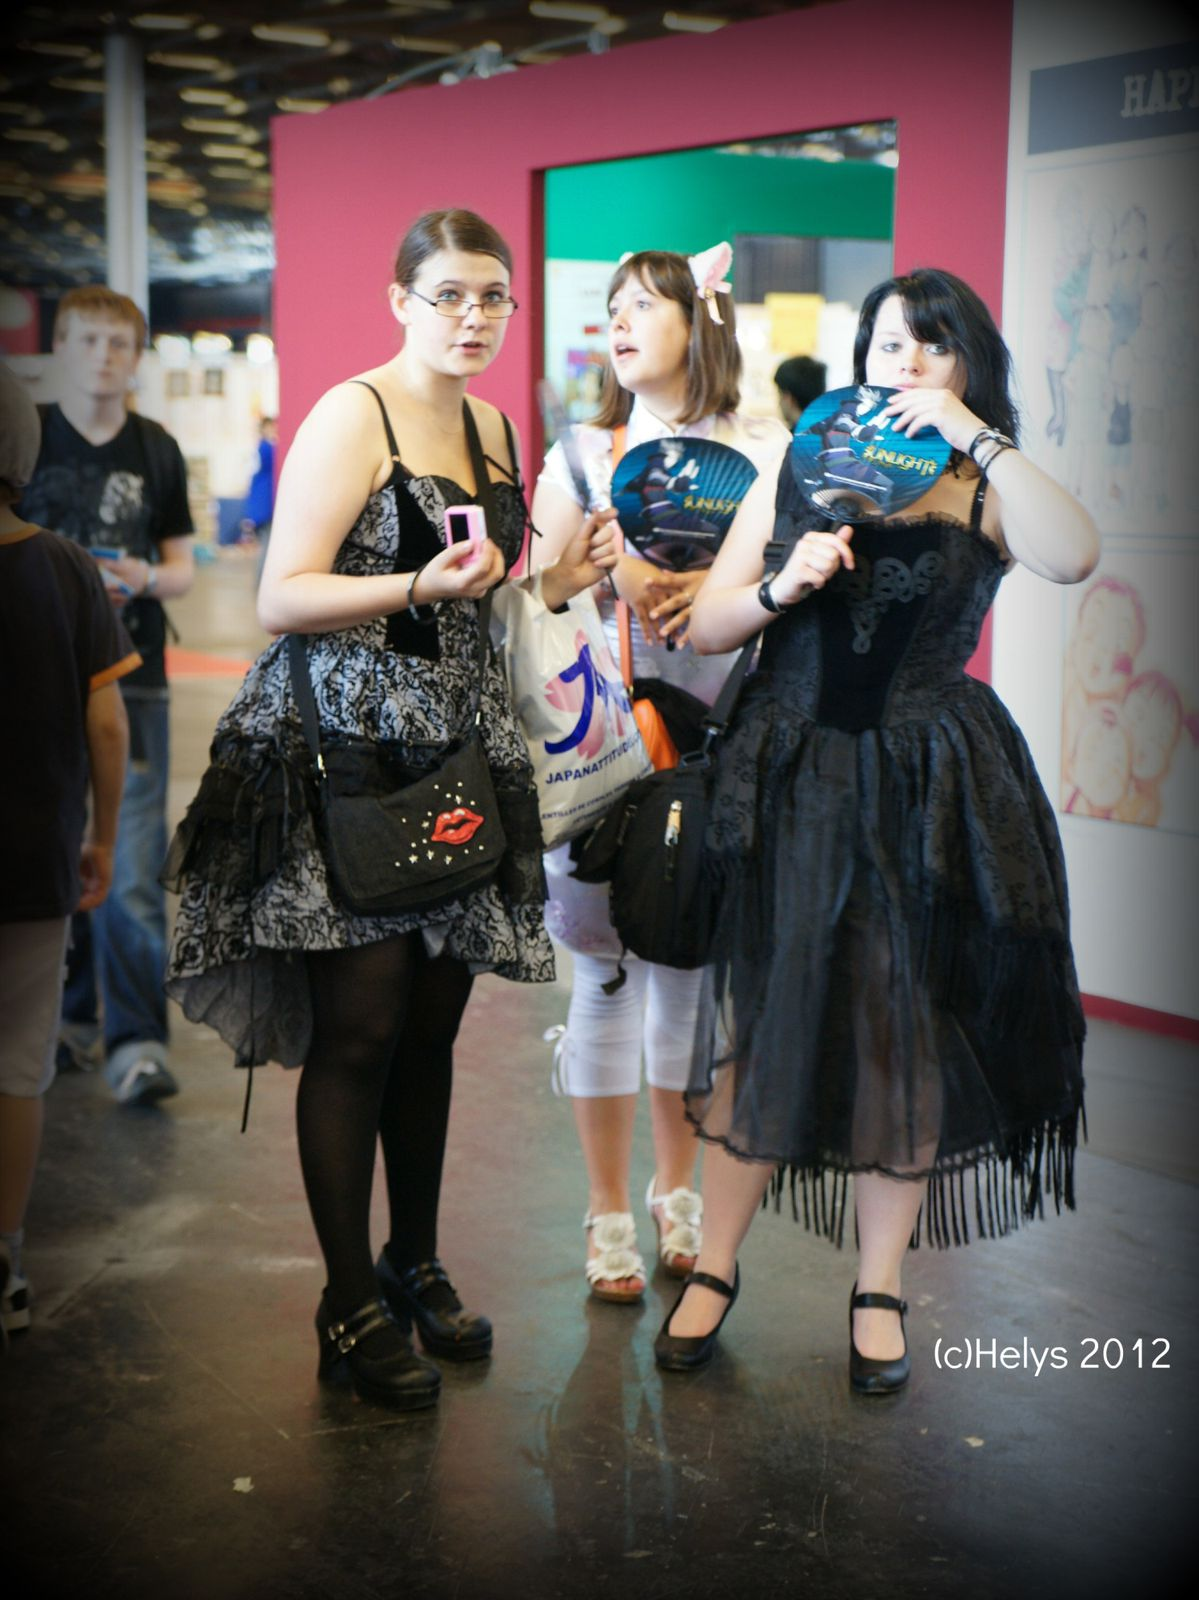 Japan expo 2012: Cosplay 6